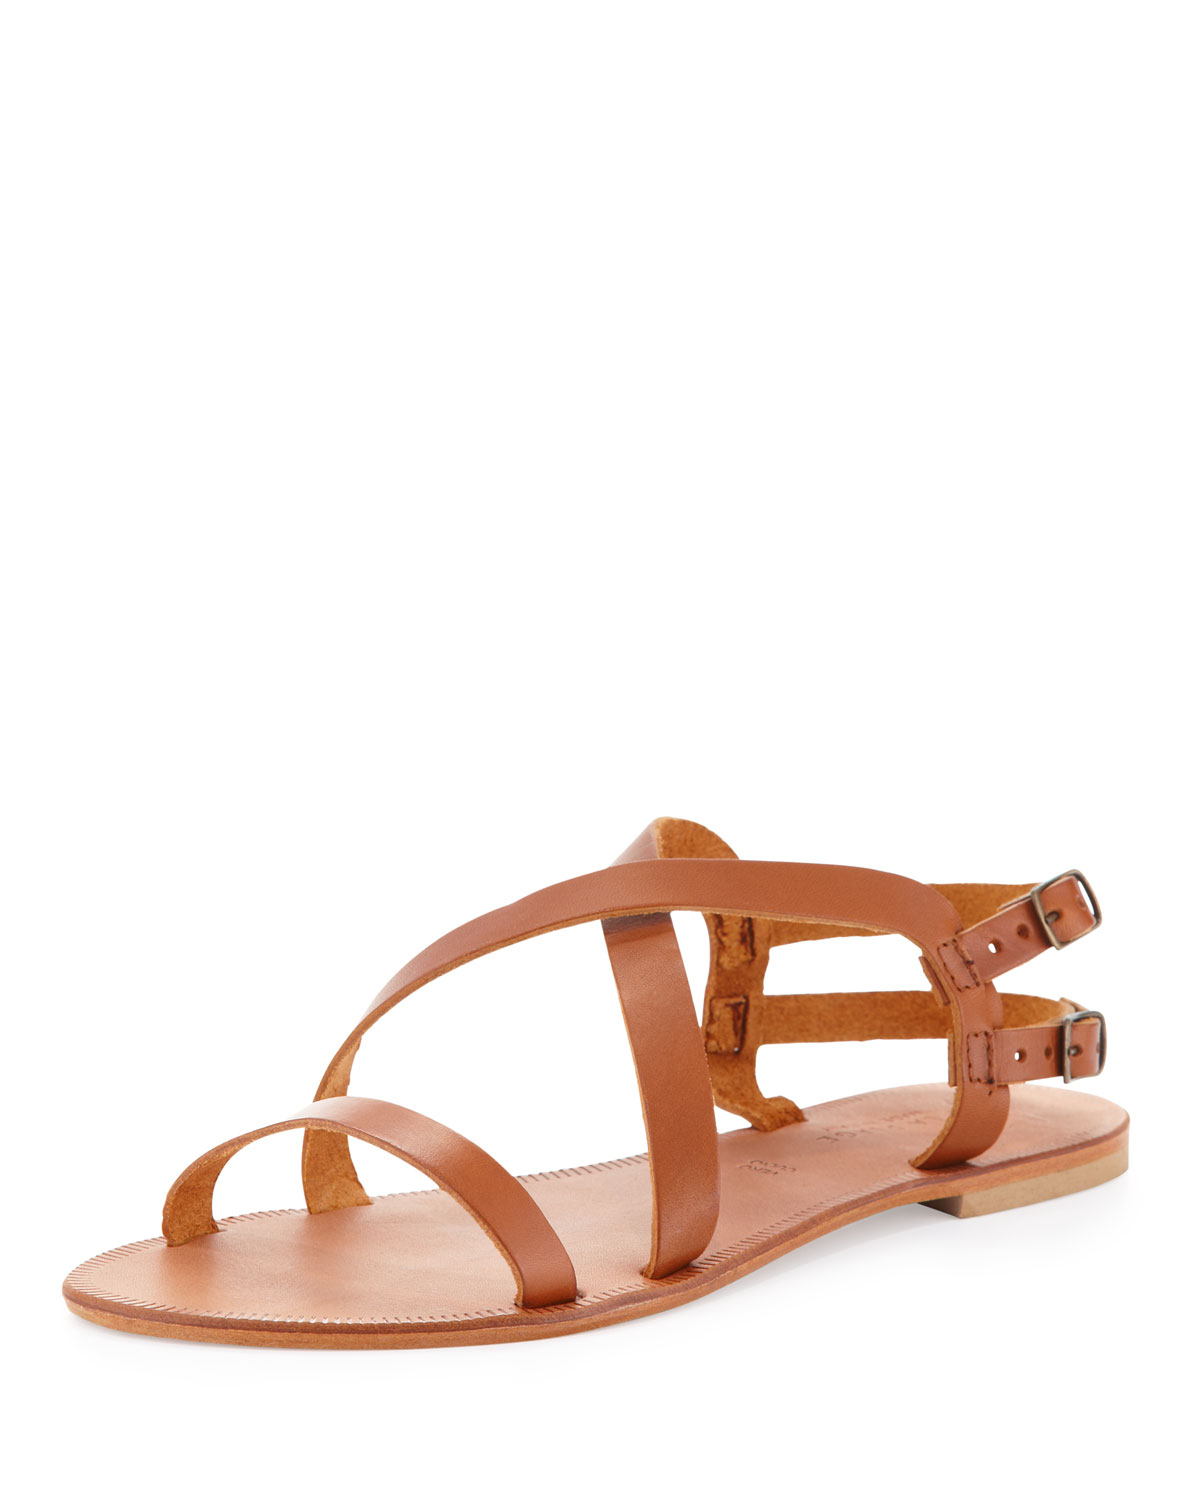 Joie Socoa Strappy Leather Sandal In Brown Lyst